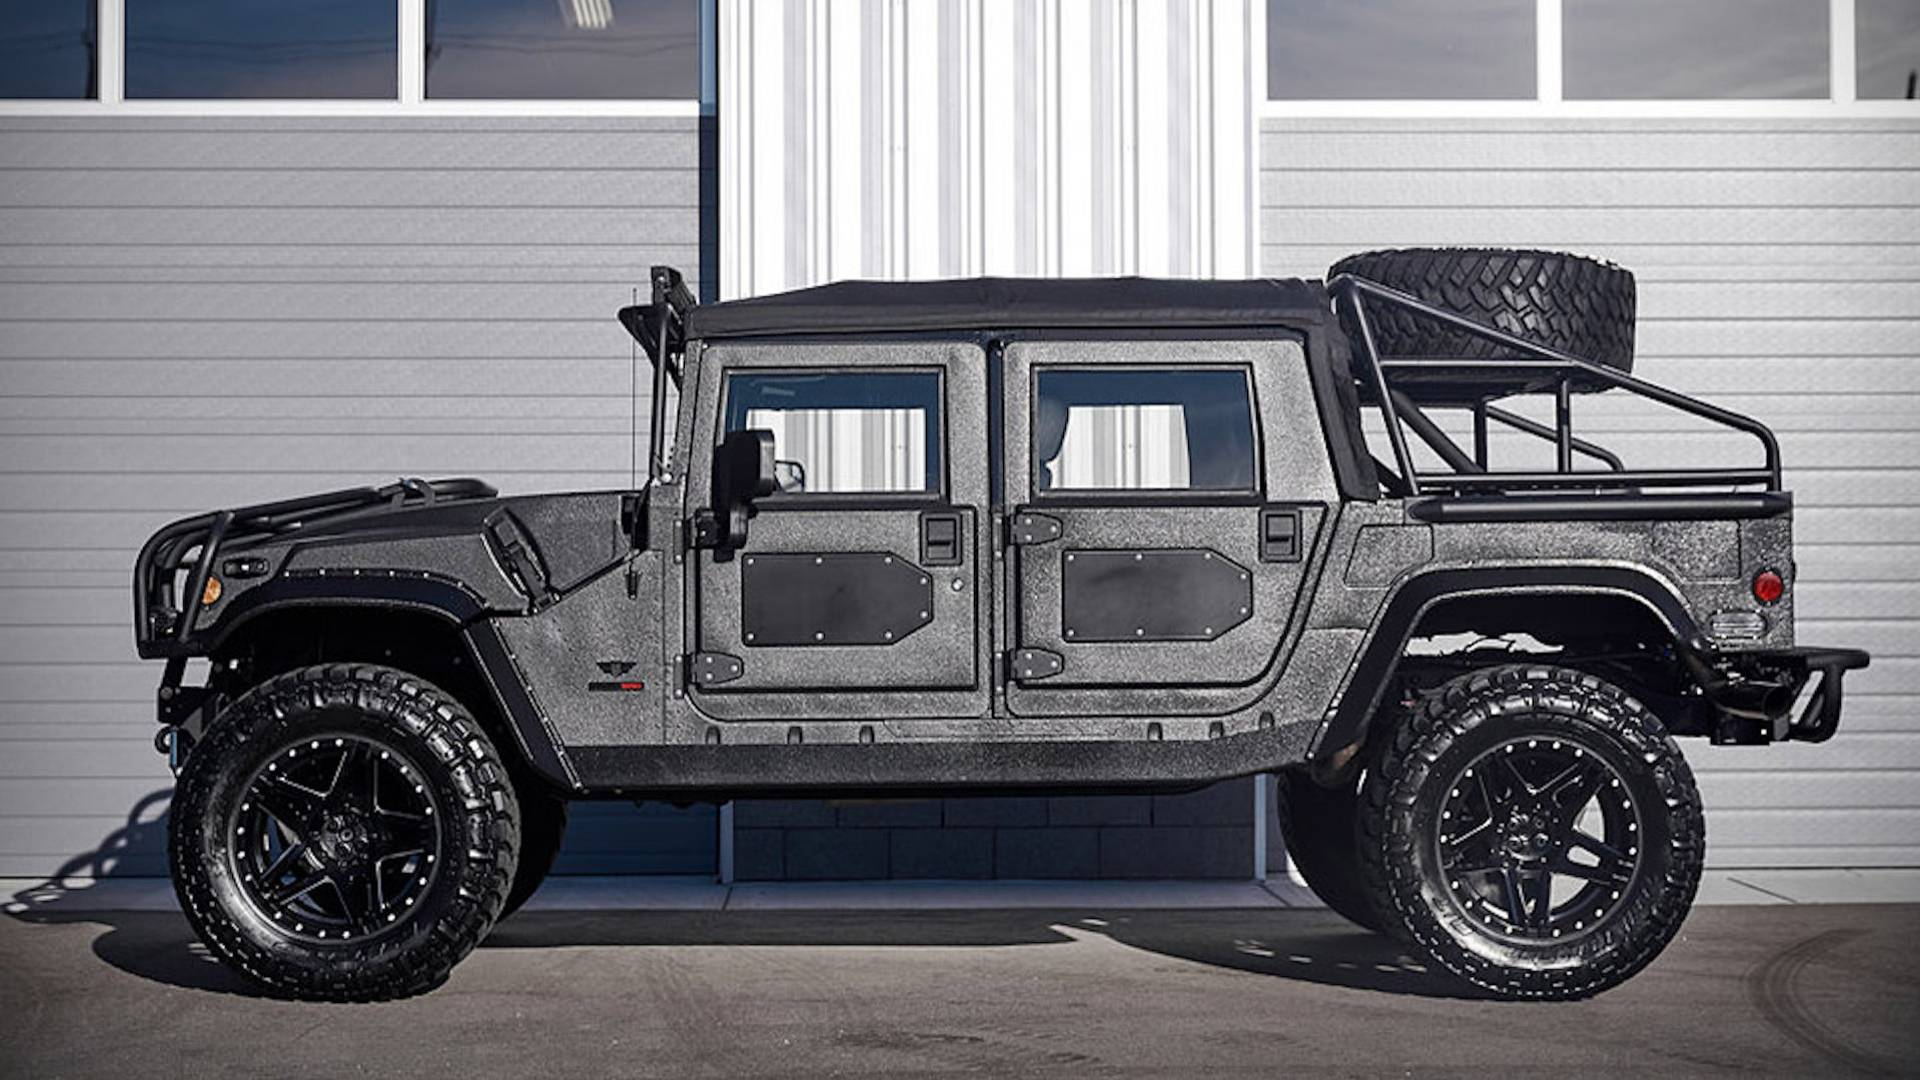 Mil-Spec Hummer H1 Is A Superstar SUV We Want In Our Garage